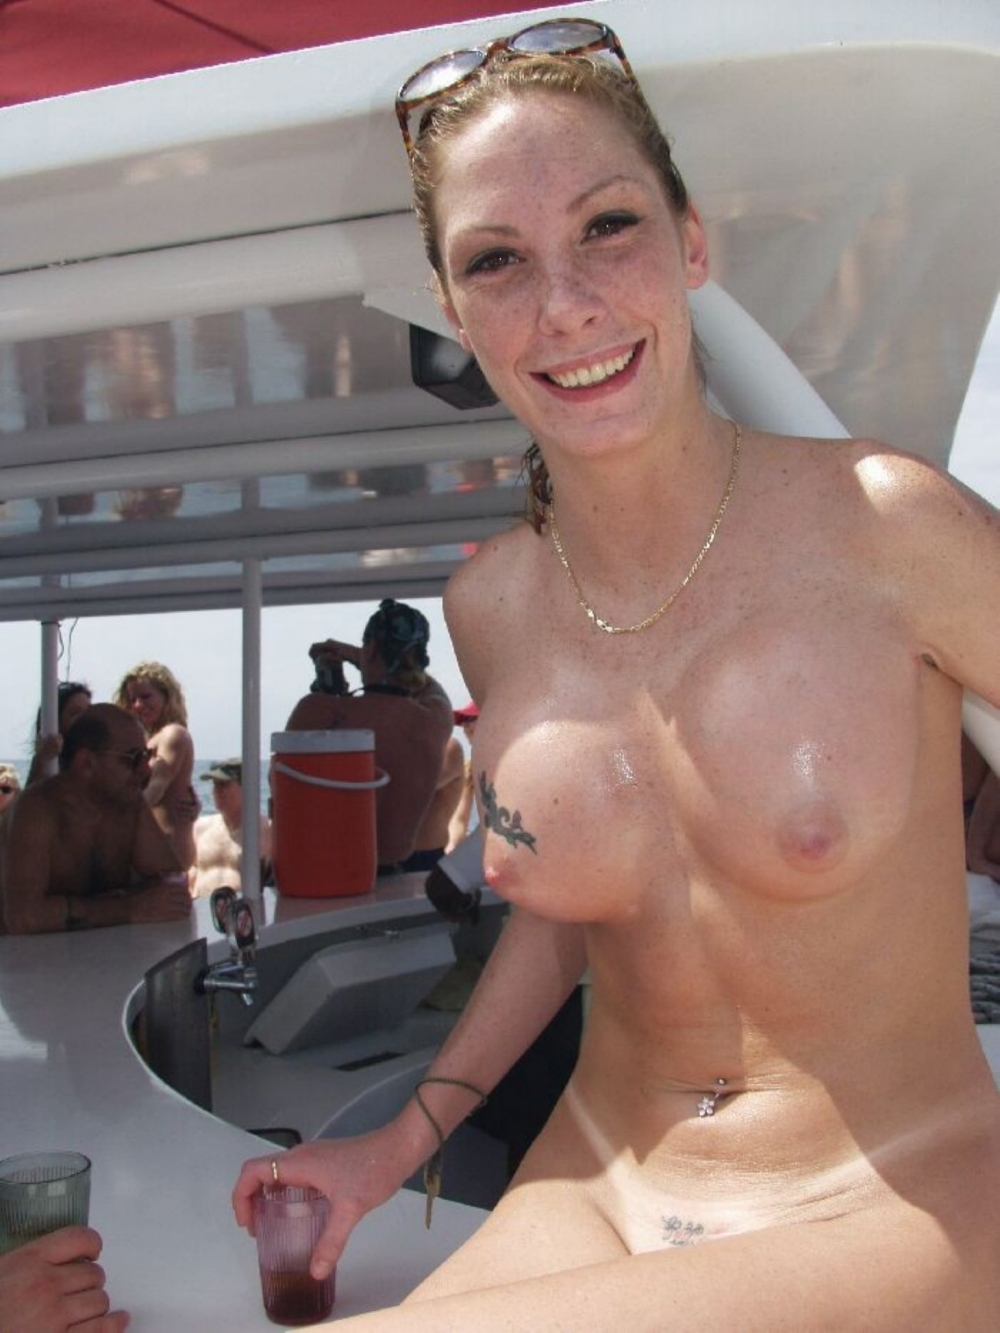 Tits On Boats